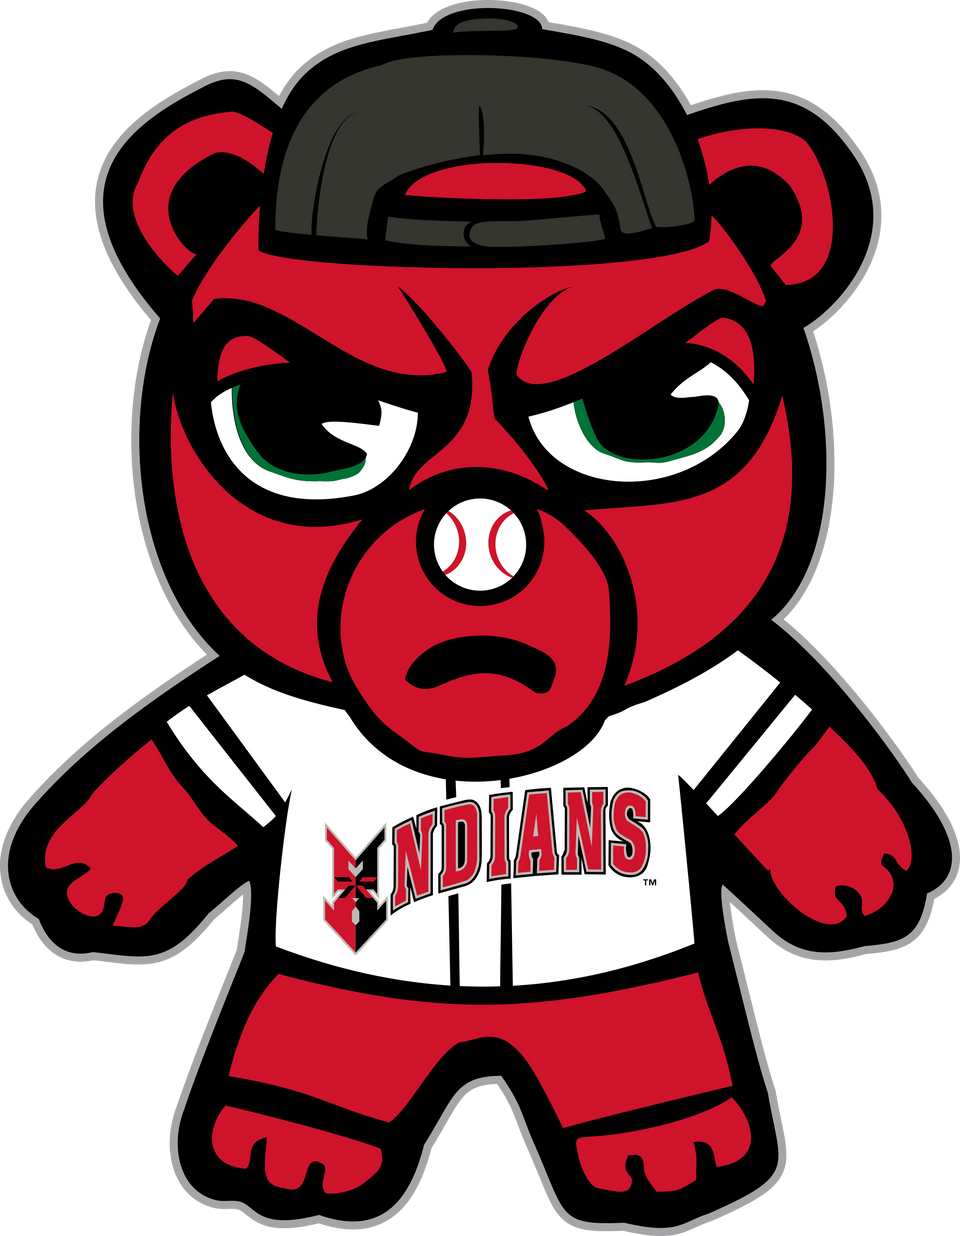 collections/Indianapolis_Indians.png